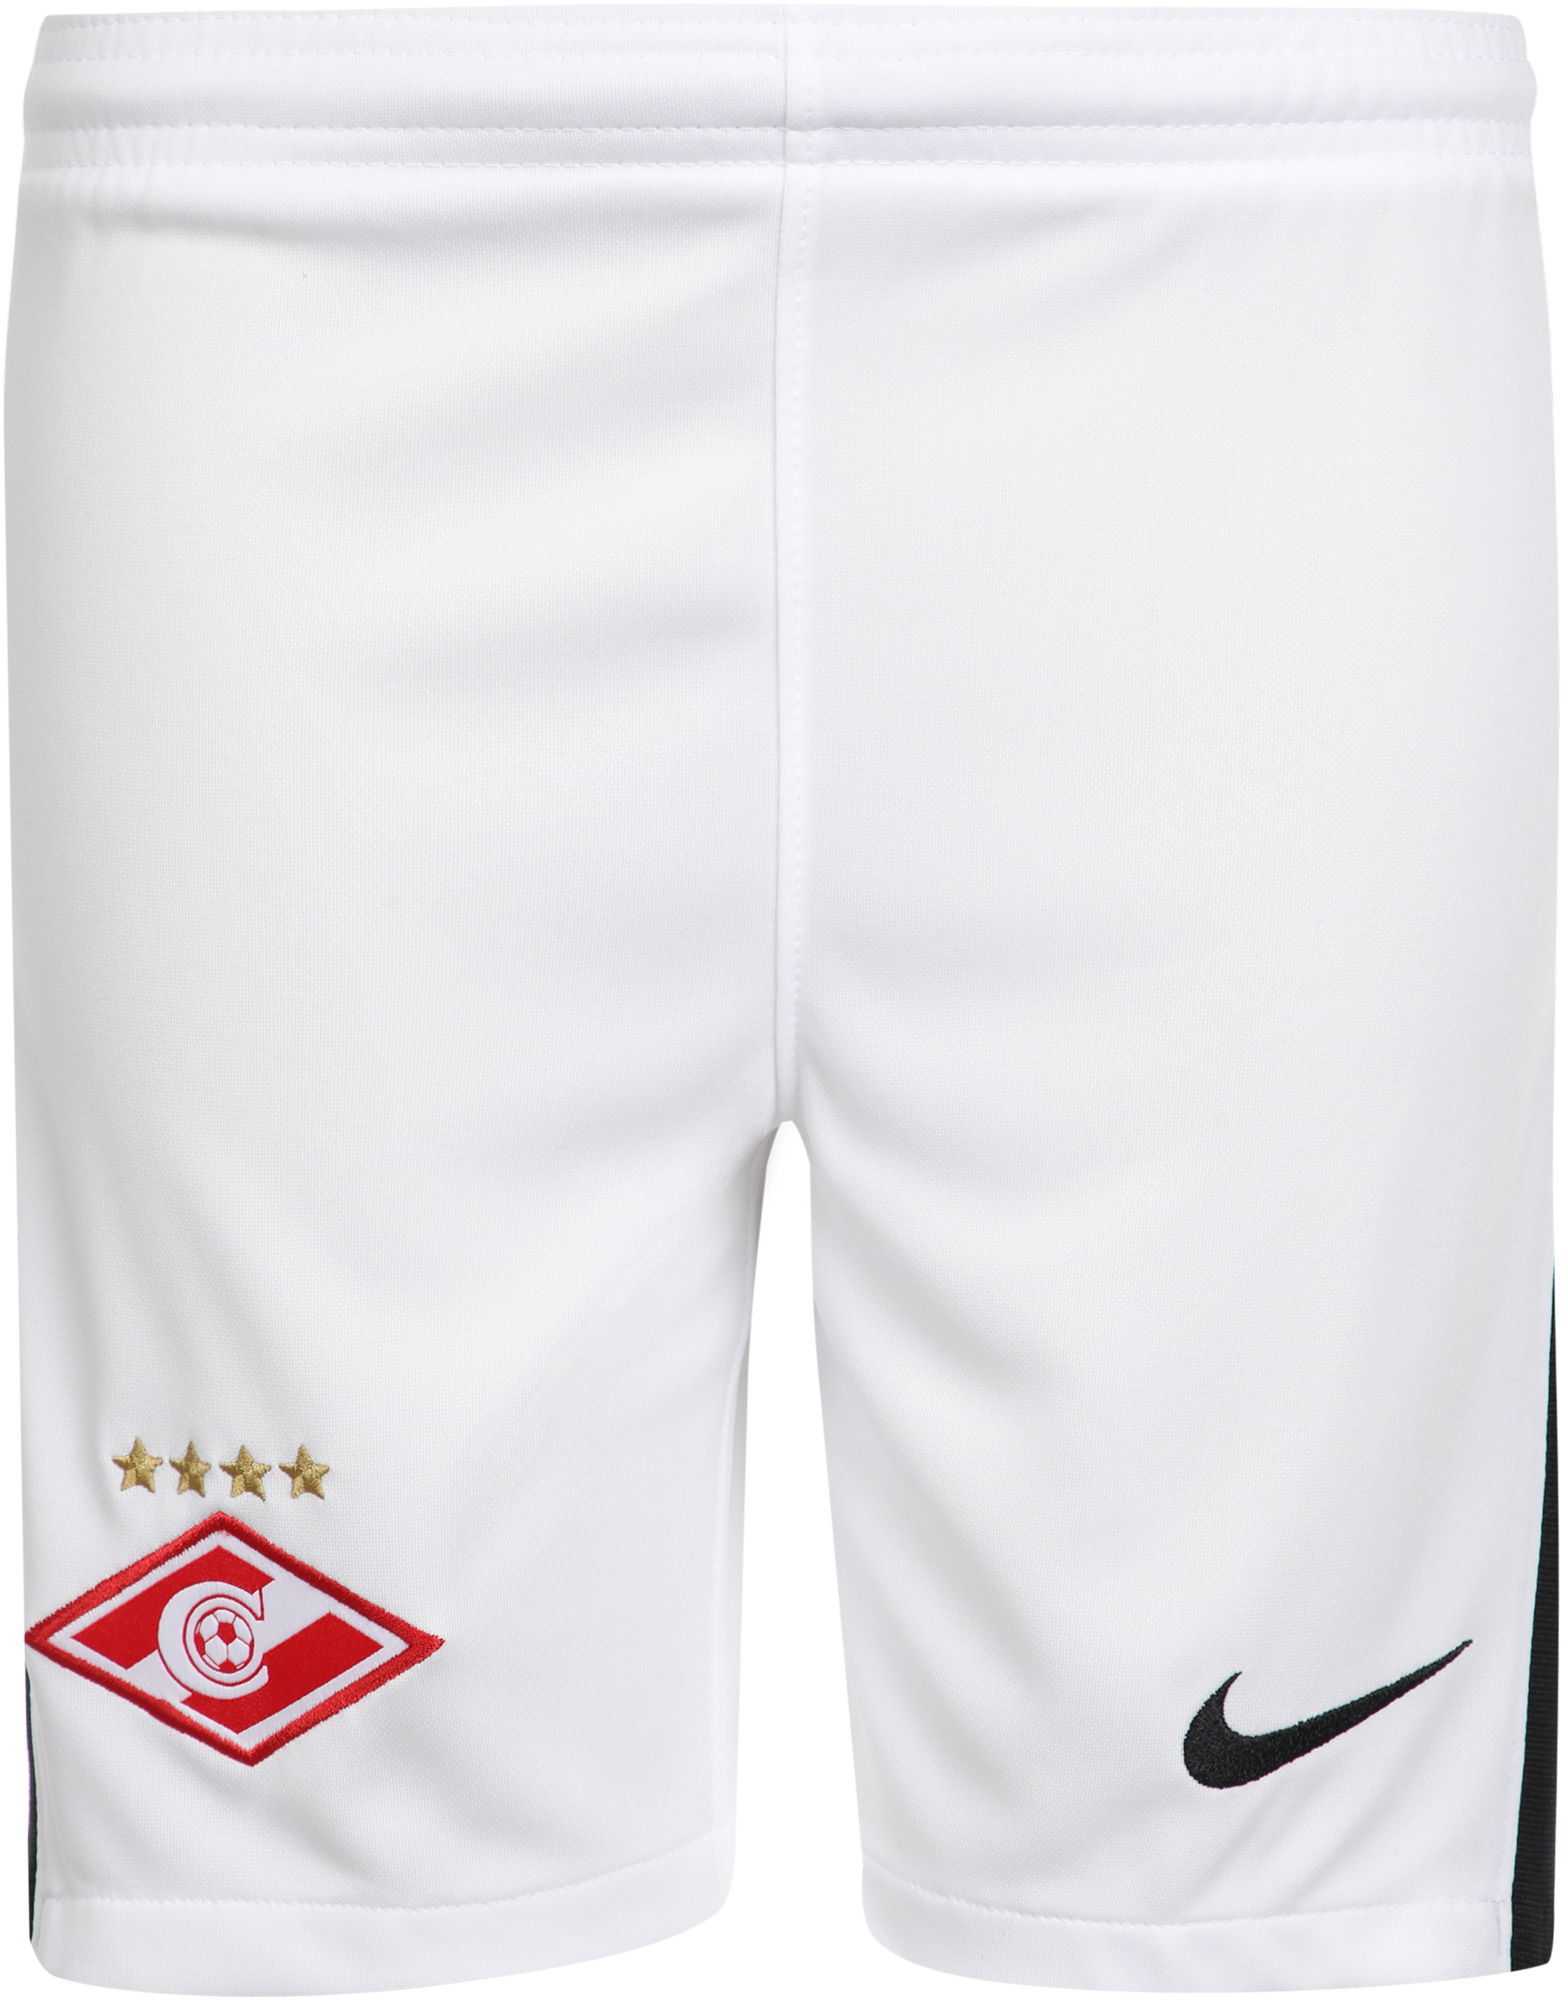 гетры nike barcelona stadium home 2019 20 Nike Шорты для мальчиков Nike Spartak Moscow 2020/21 Stadium Home/Away, размер 137-147